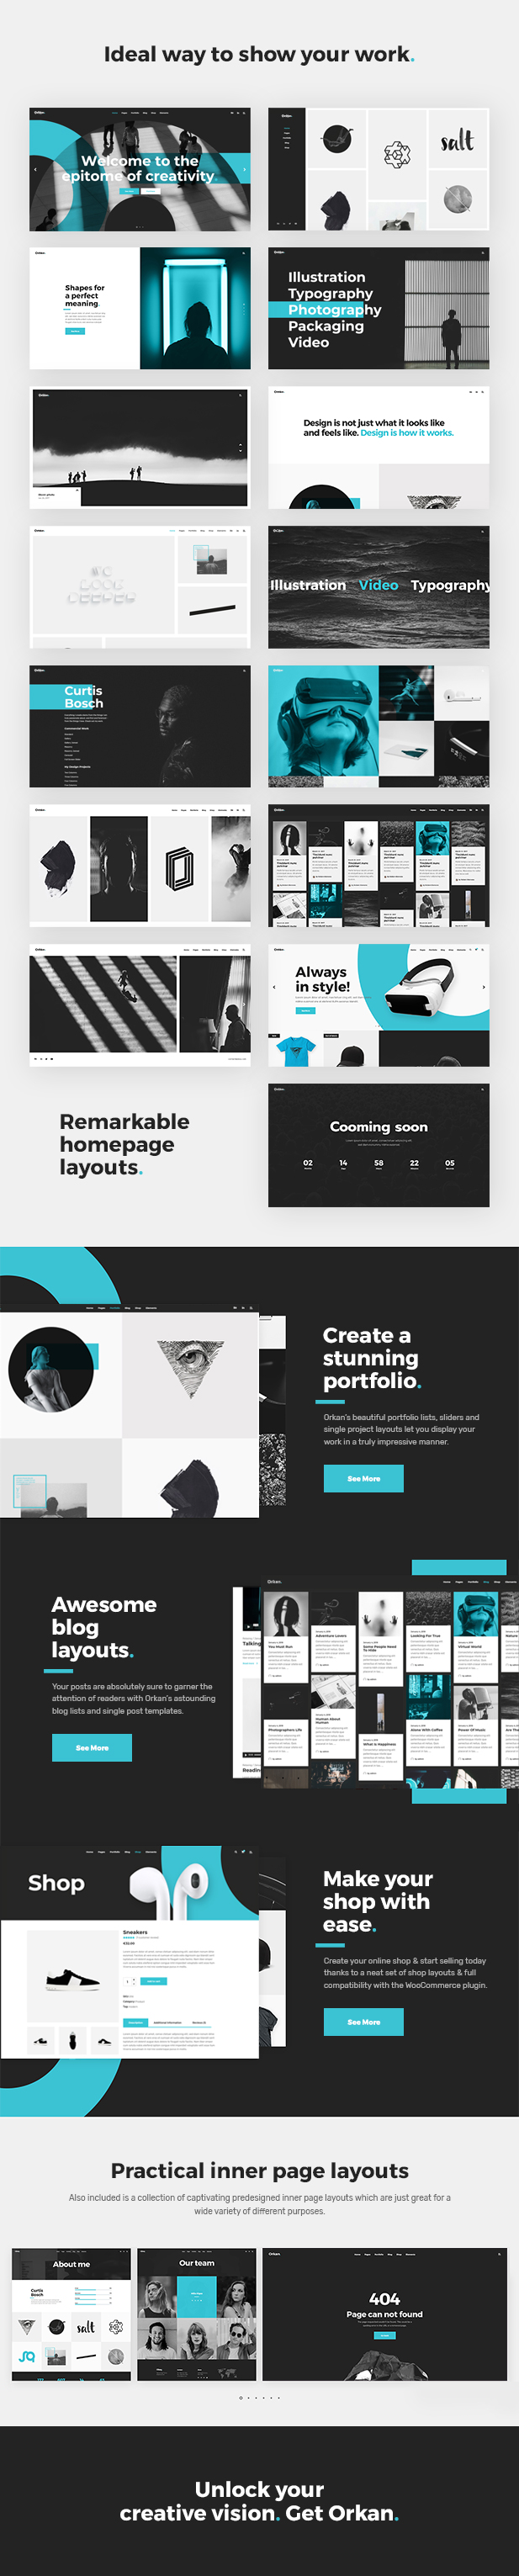 Orkan - Artist and Design Agency Portfolio Theme - 1